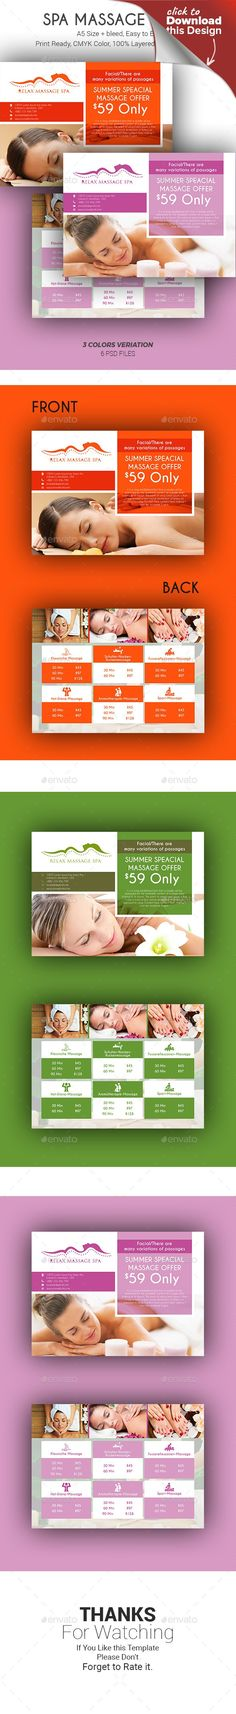 bamboo, beauty, body care, brochures, candles, chiropractic, clean design, flyer, health, massage, medical spa, mini brochure, natural, naturalistic, pilates, pocket, prenatal massage, reflexology, relaxation, seven, spa, spa branding, spa identity, square brochure, templates, therapy, wellness, yoga  This Spa Massage Flyer Template created with Photoshop for the spa and massage industry. Can also be edited and used for the healthcare industry. All text, colors, images, fonts are…